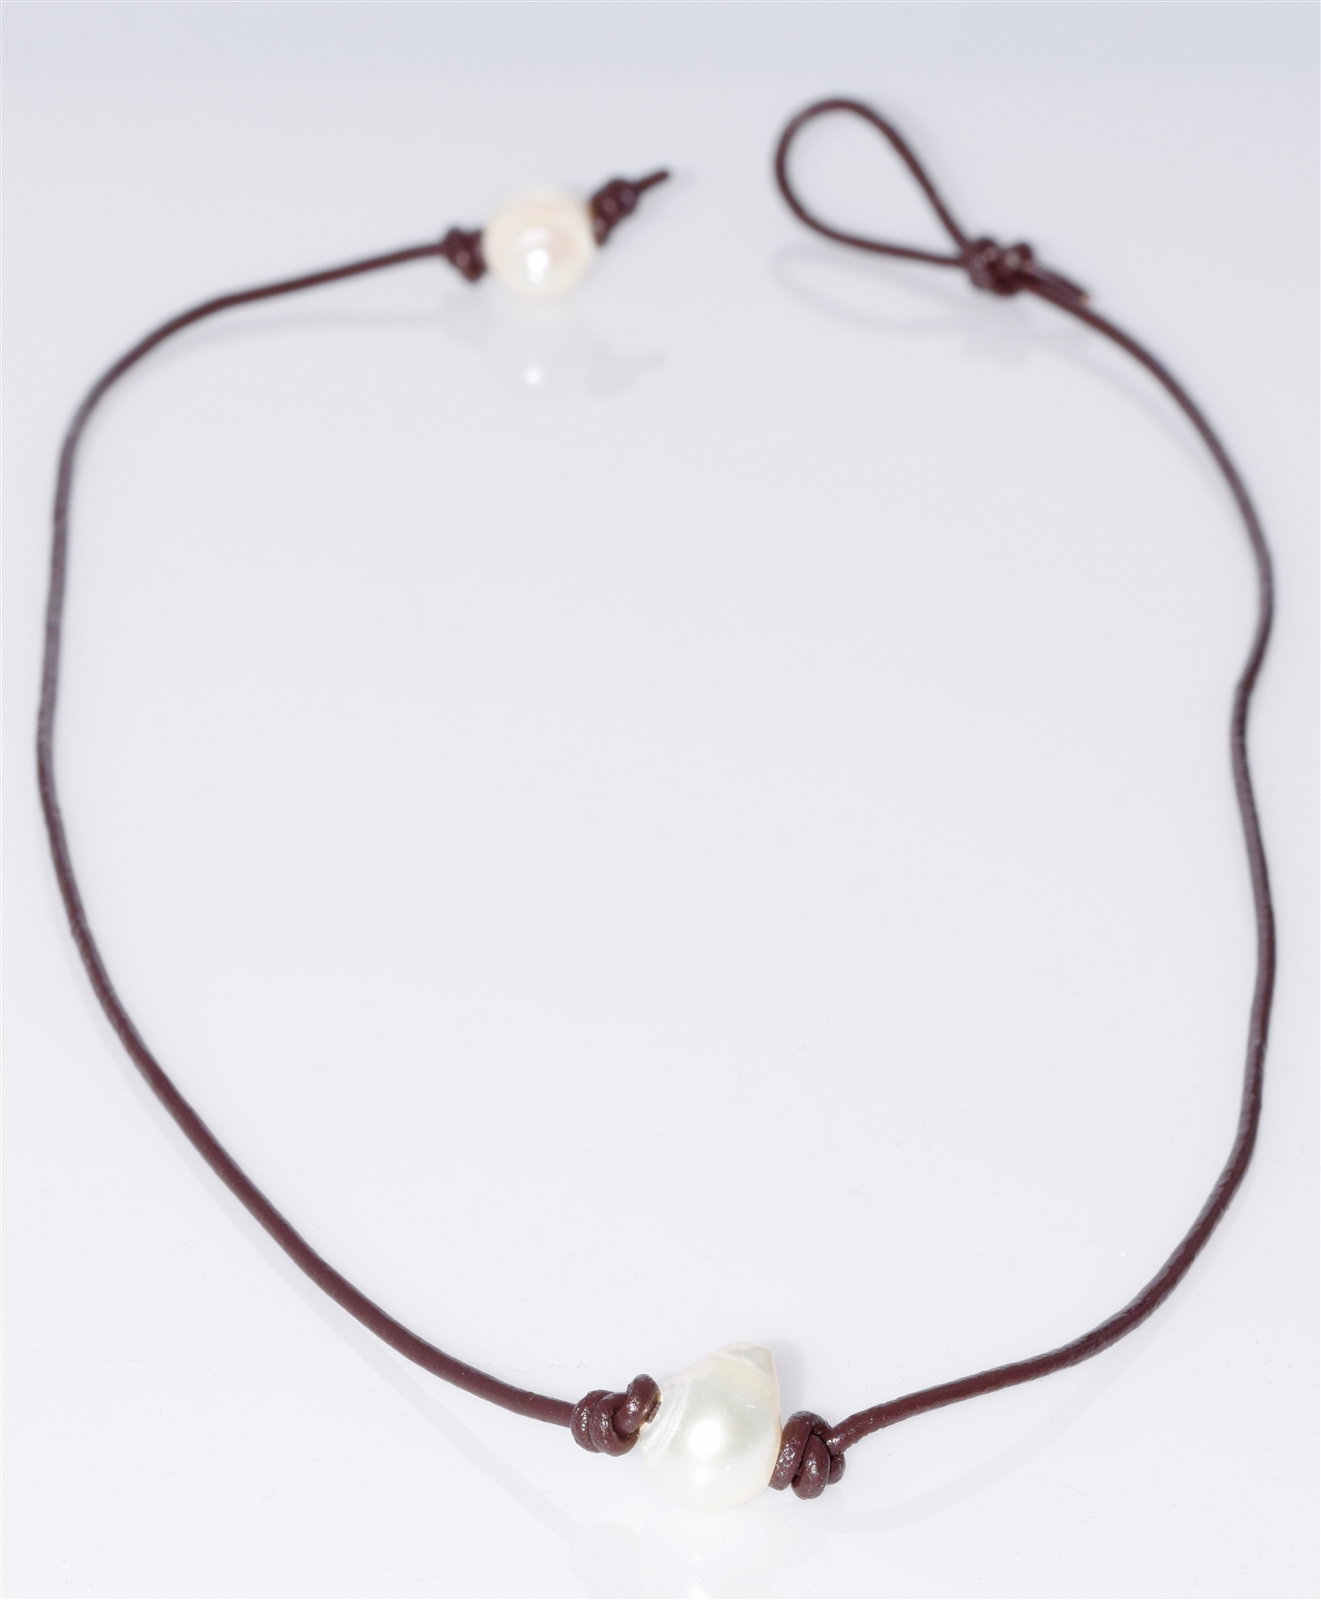 cosa product necklace brown handmade bella at jewelry season pearl tis the tyler sm single store